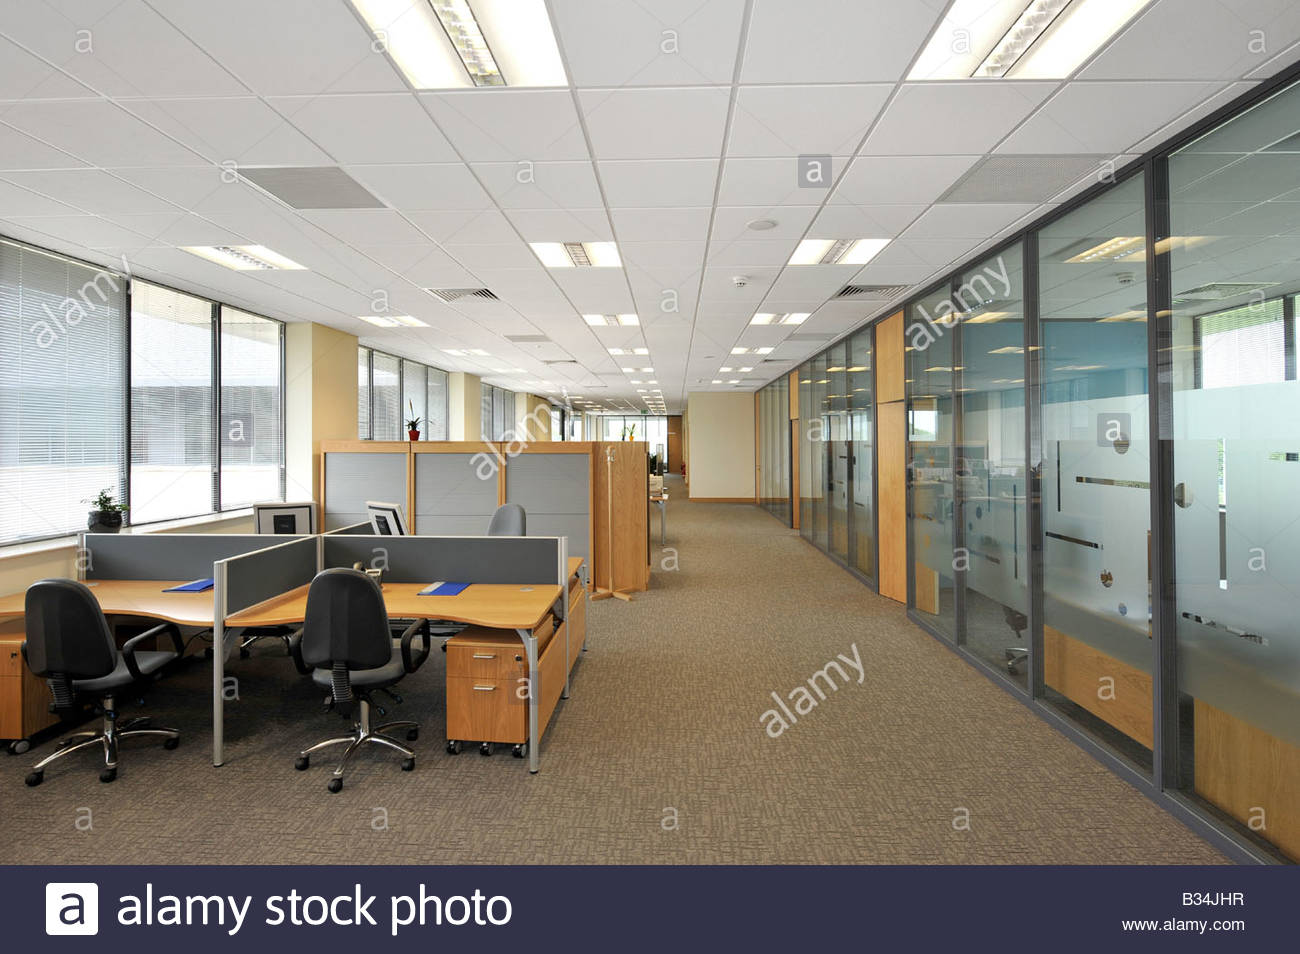 Modern Open Plan Office Space Stock Photo Royalty Free